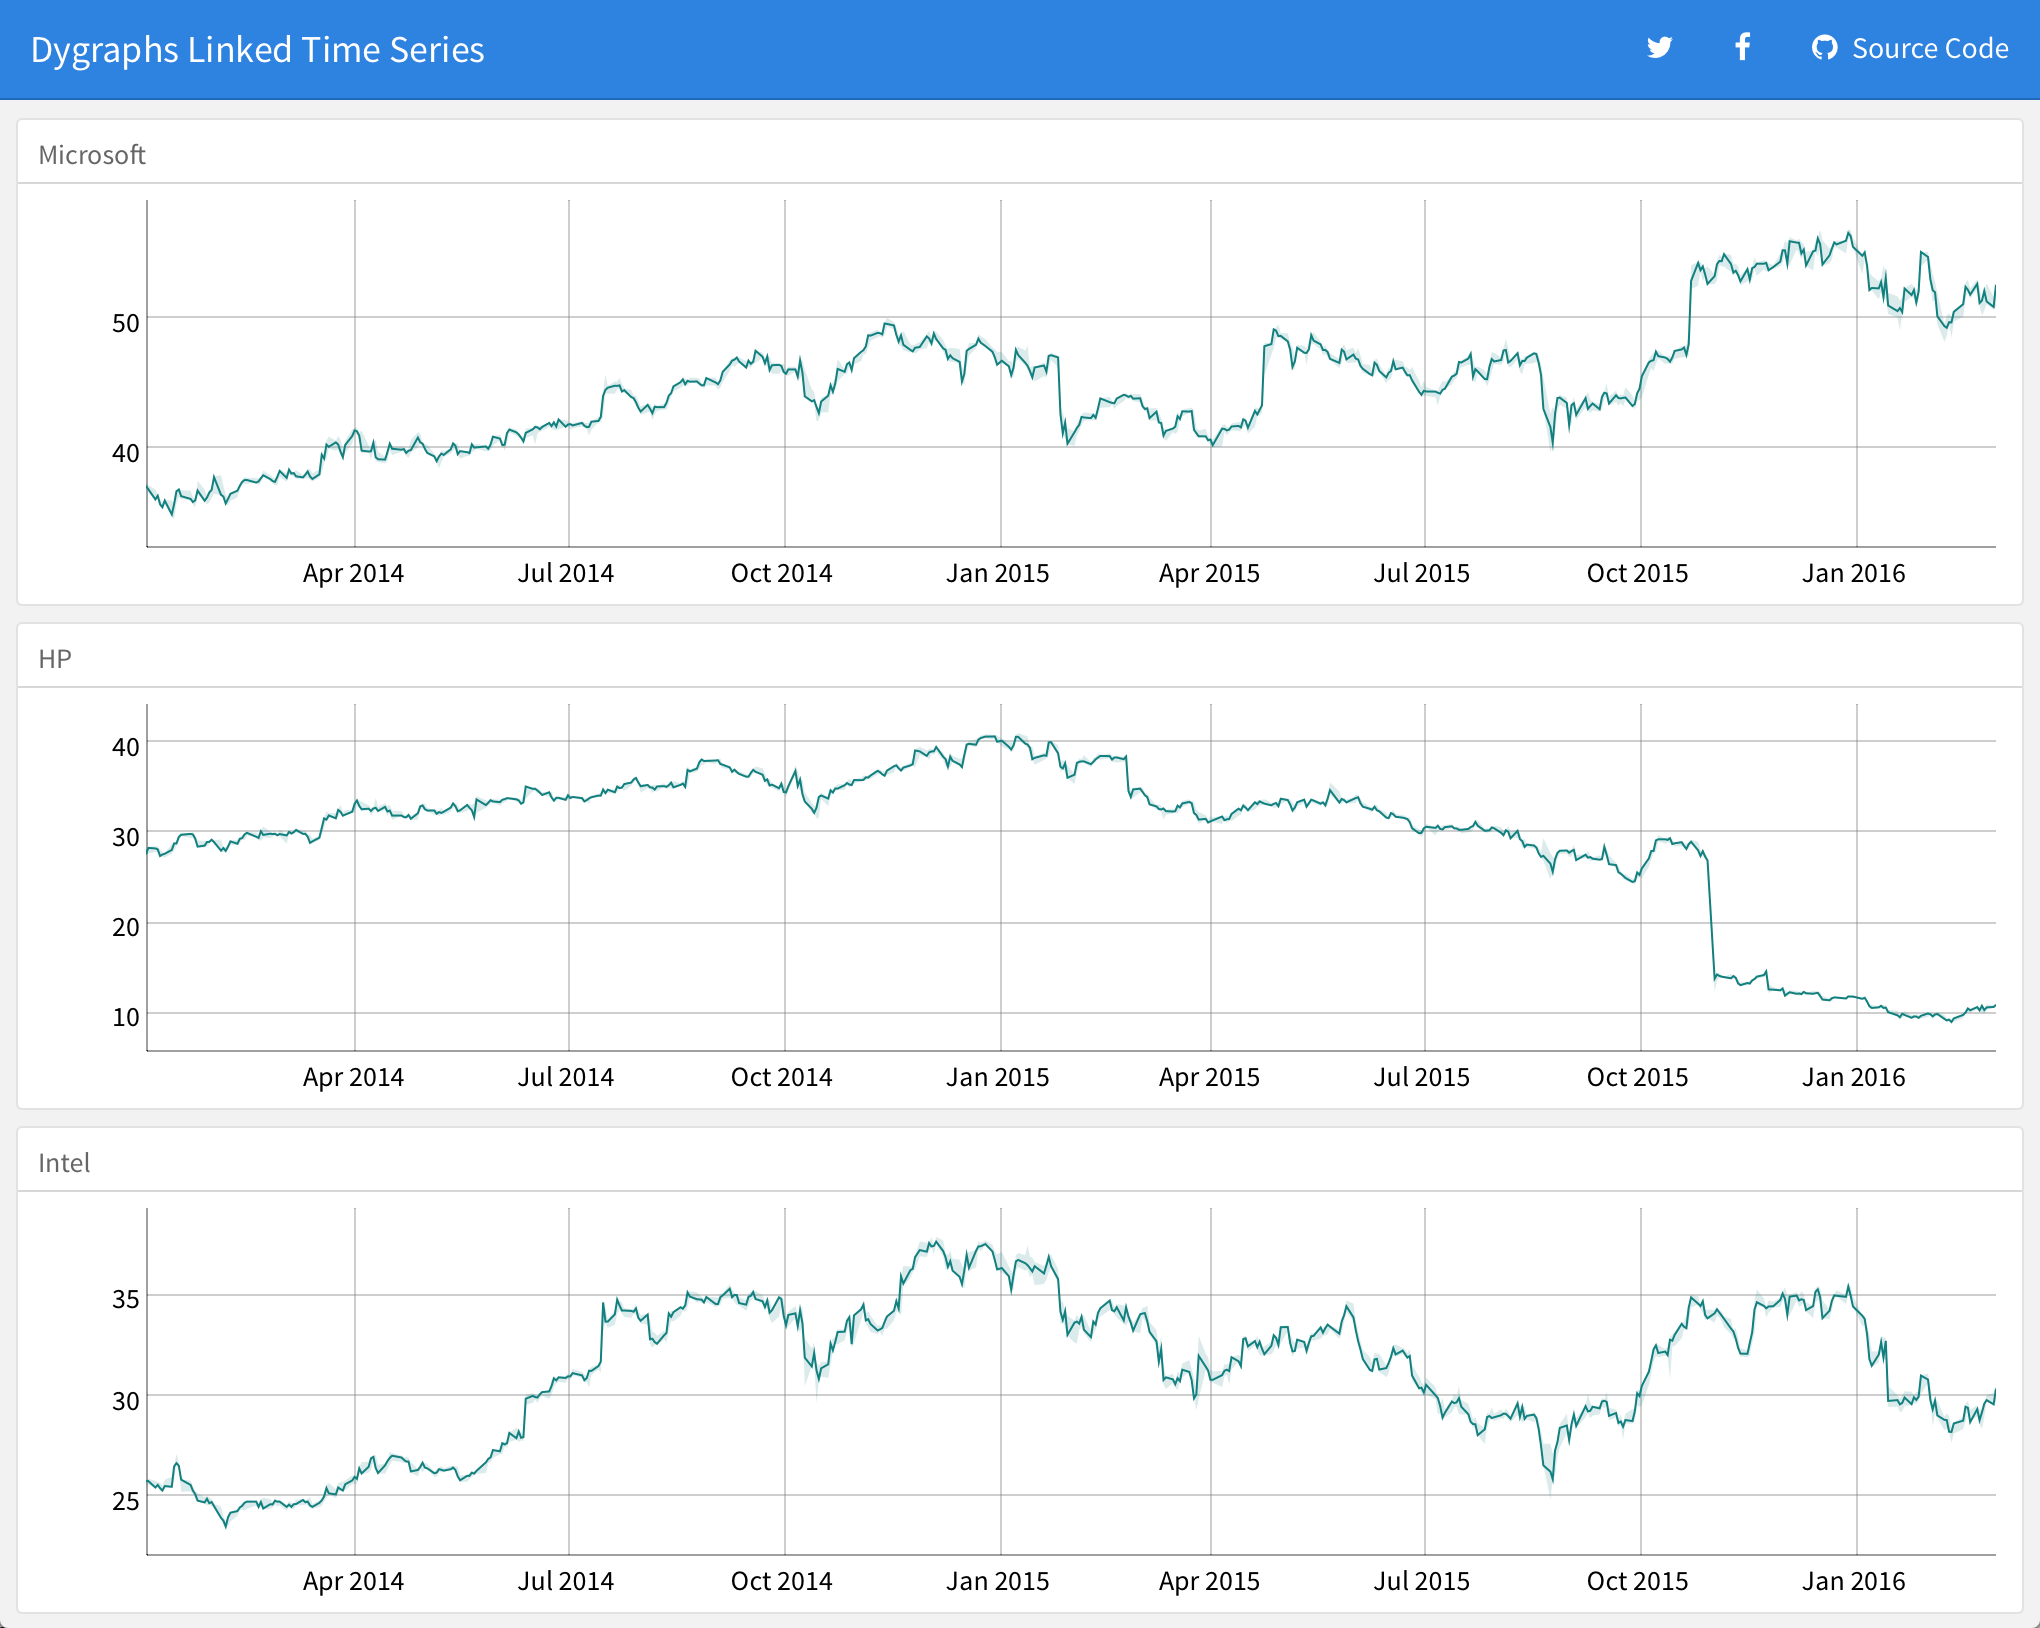 dygraphs: Linked time series